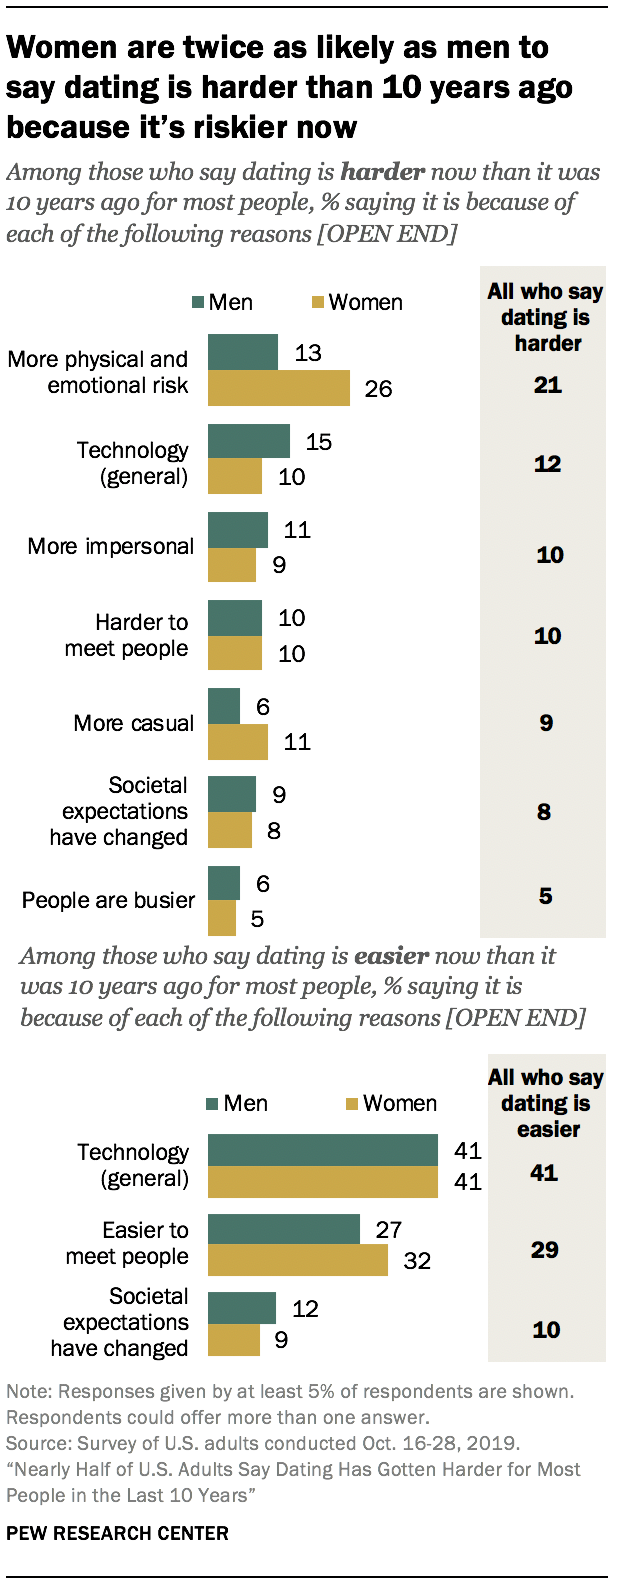 Women are twice as likely as men to say dating is harder than 10 years ago because it's riskier now